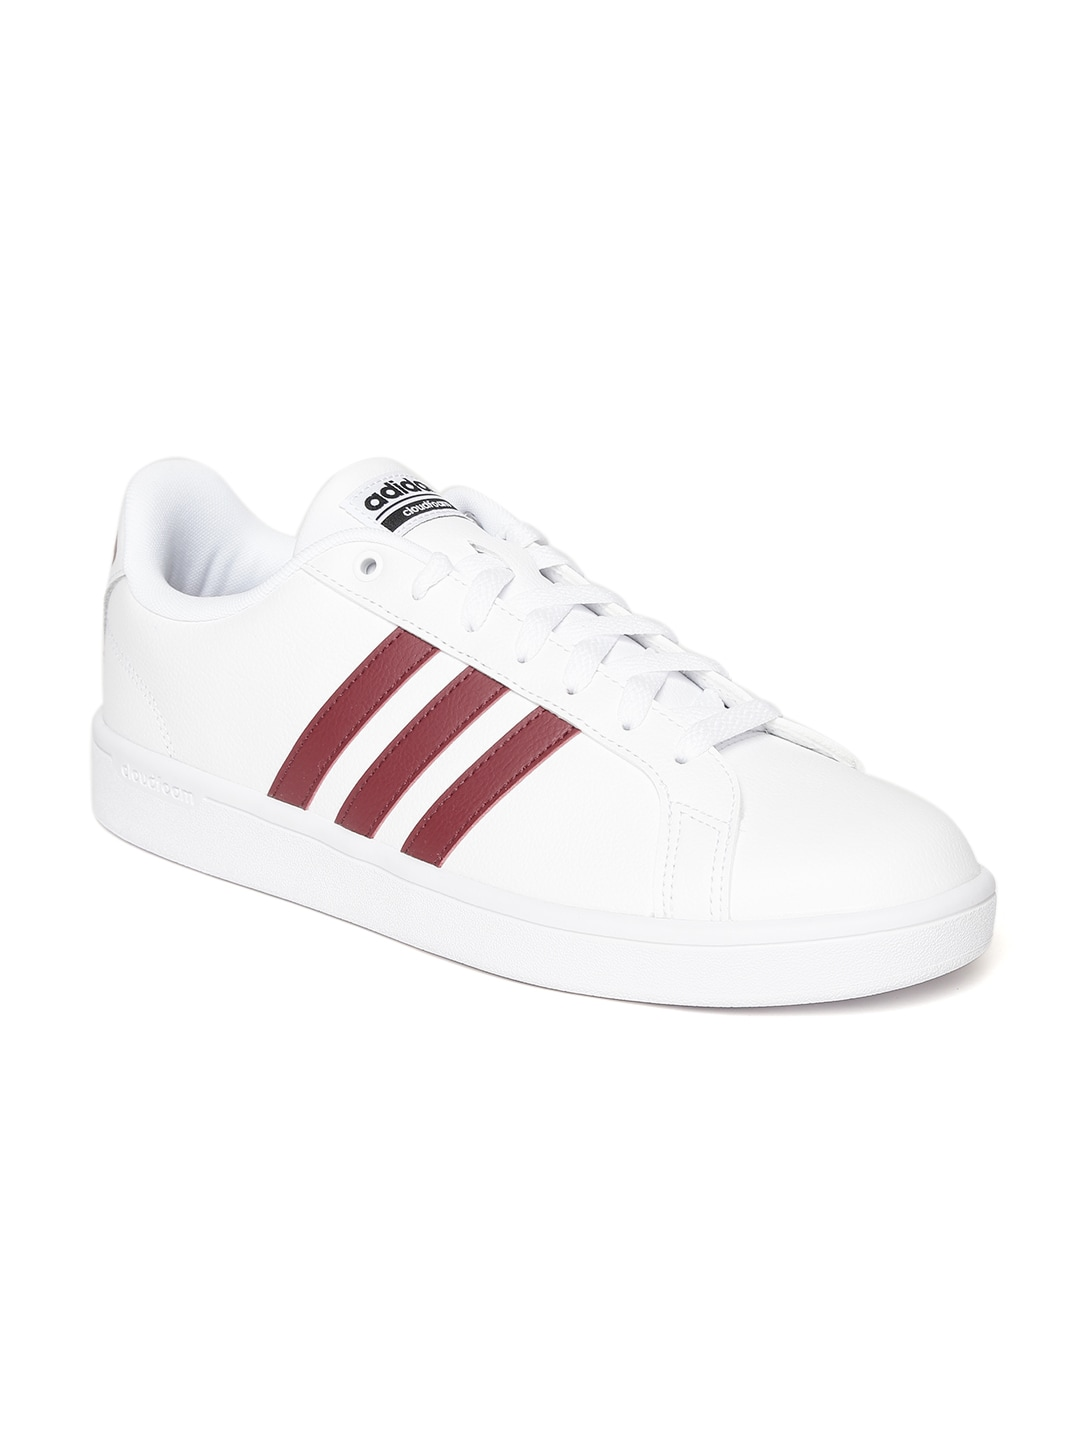 7c7040b74b5578 Adidas White Shoes - Buy Adidas White Shoes Online in India